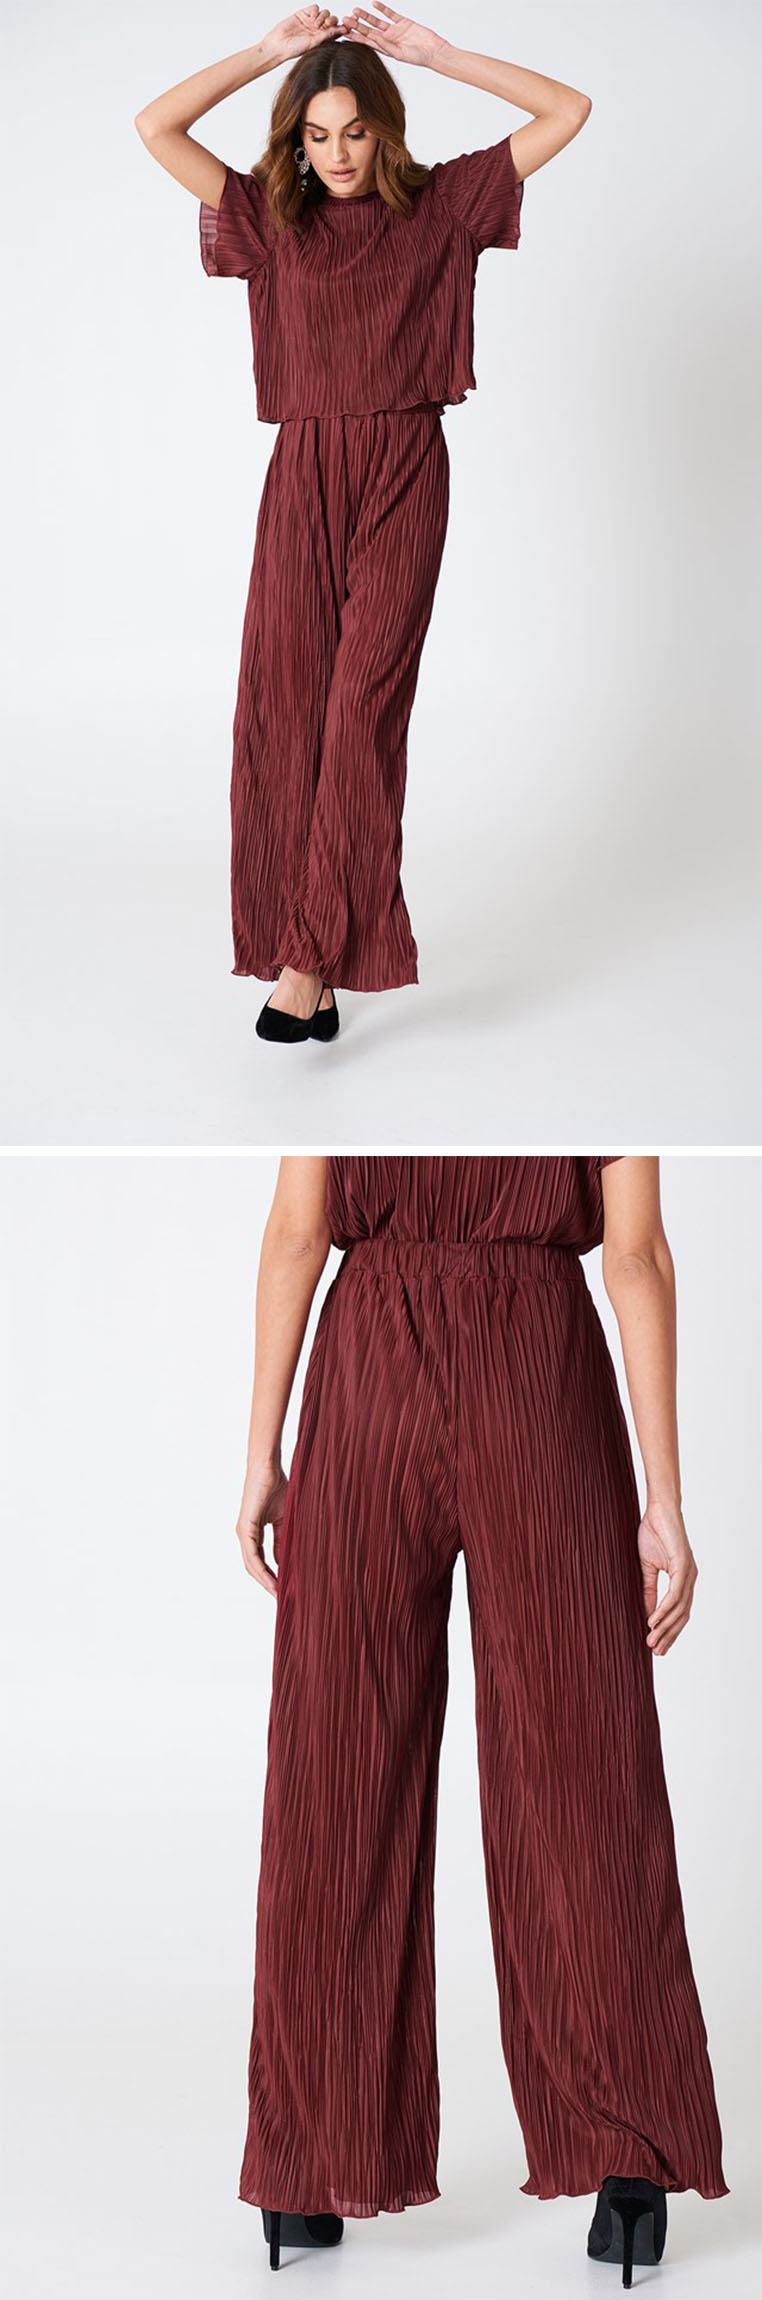 Fashion Clothing For Women 2018 Pleated Wide Leg Pants